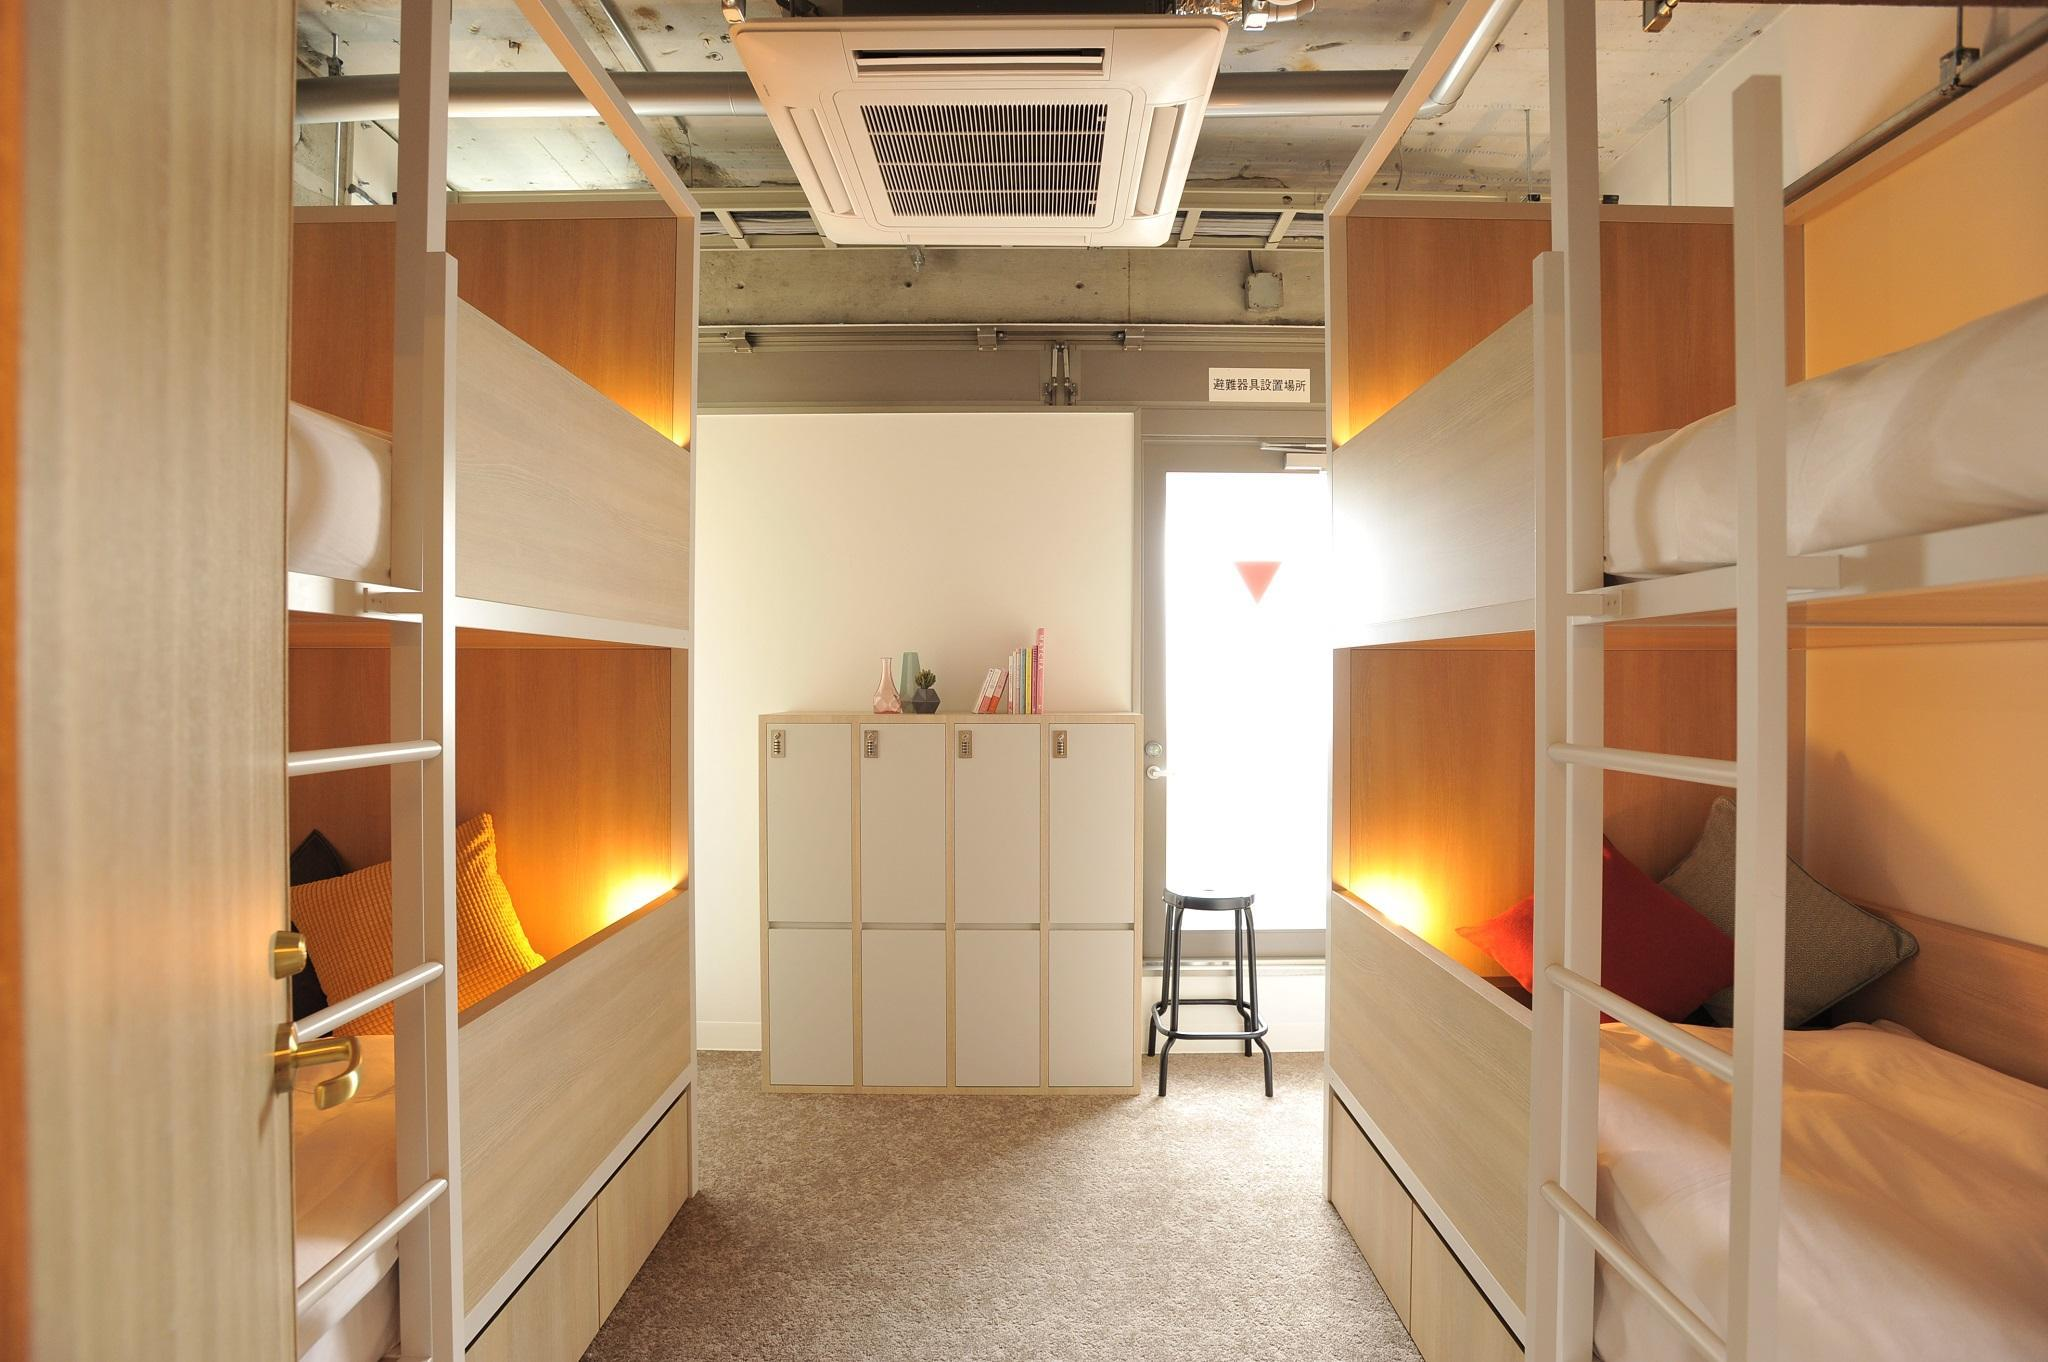 Private Room for 2 People with 2 Bunk Beds - Female Only